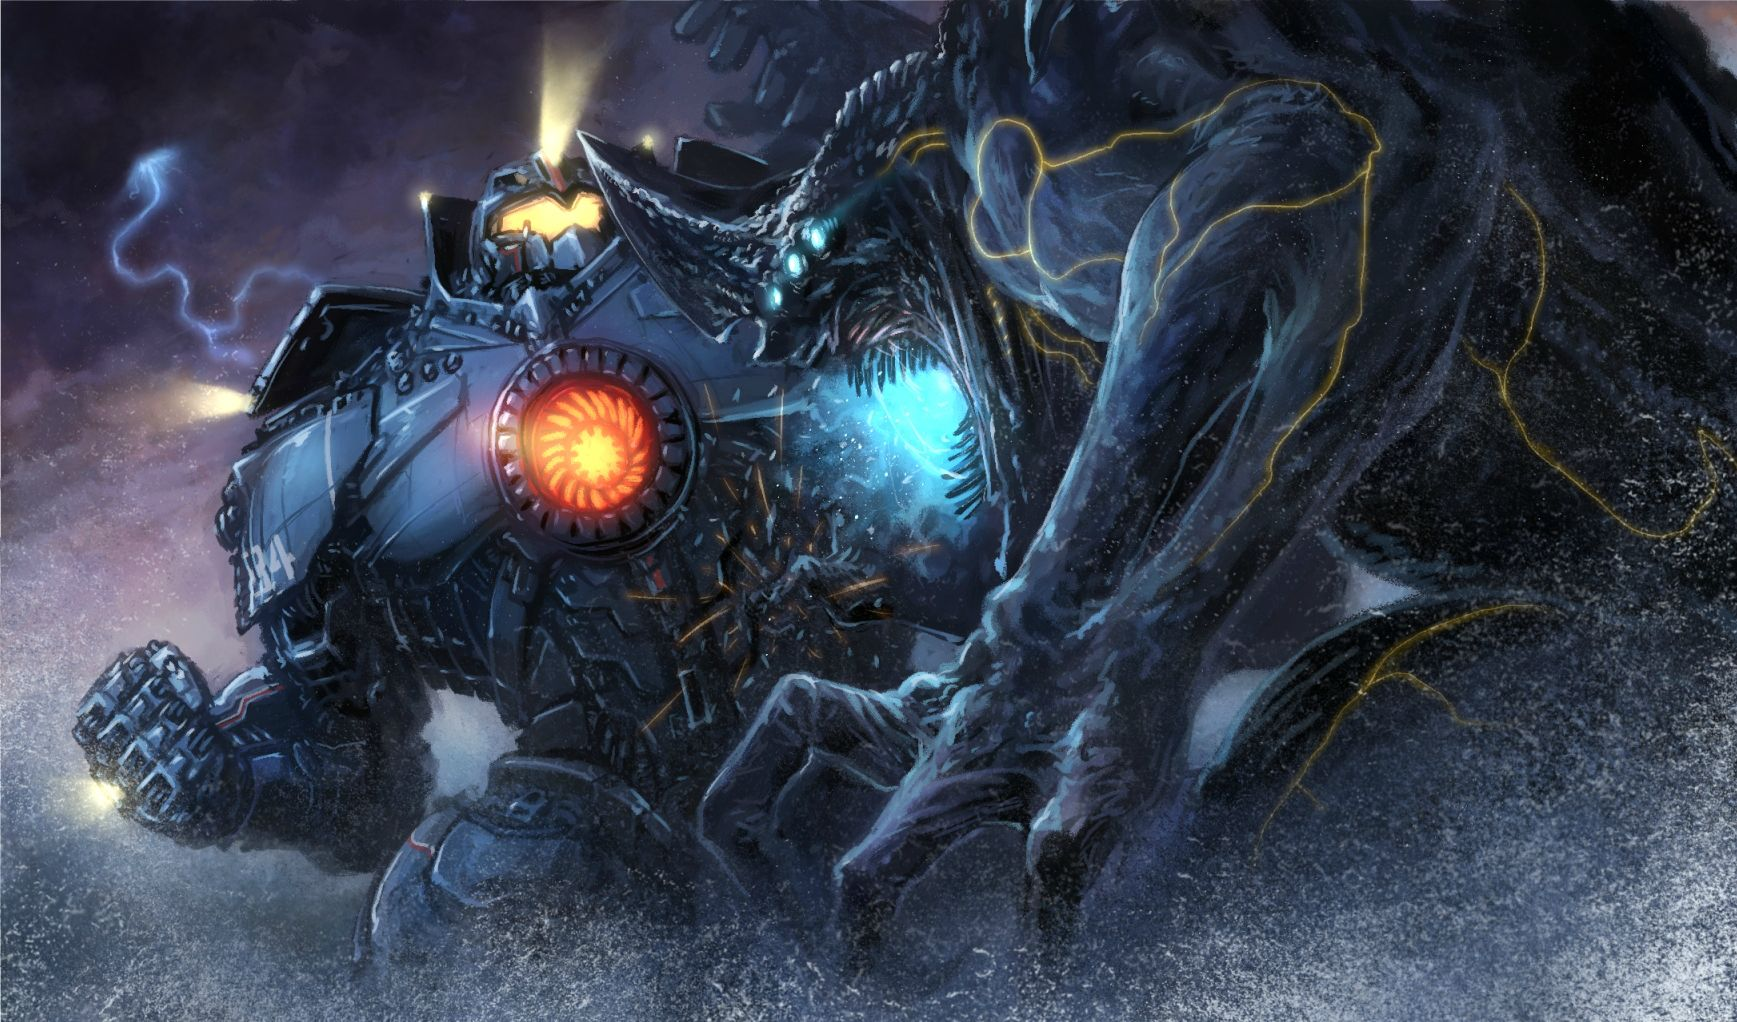 [45+] Gypsy Danger Wallpaper on WallpaperSafari Pacific Rim Jaeger Gypsy Danger Wallpaper